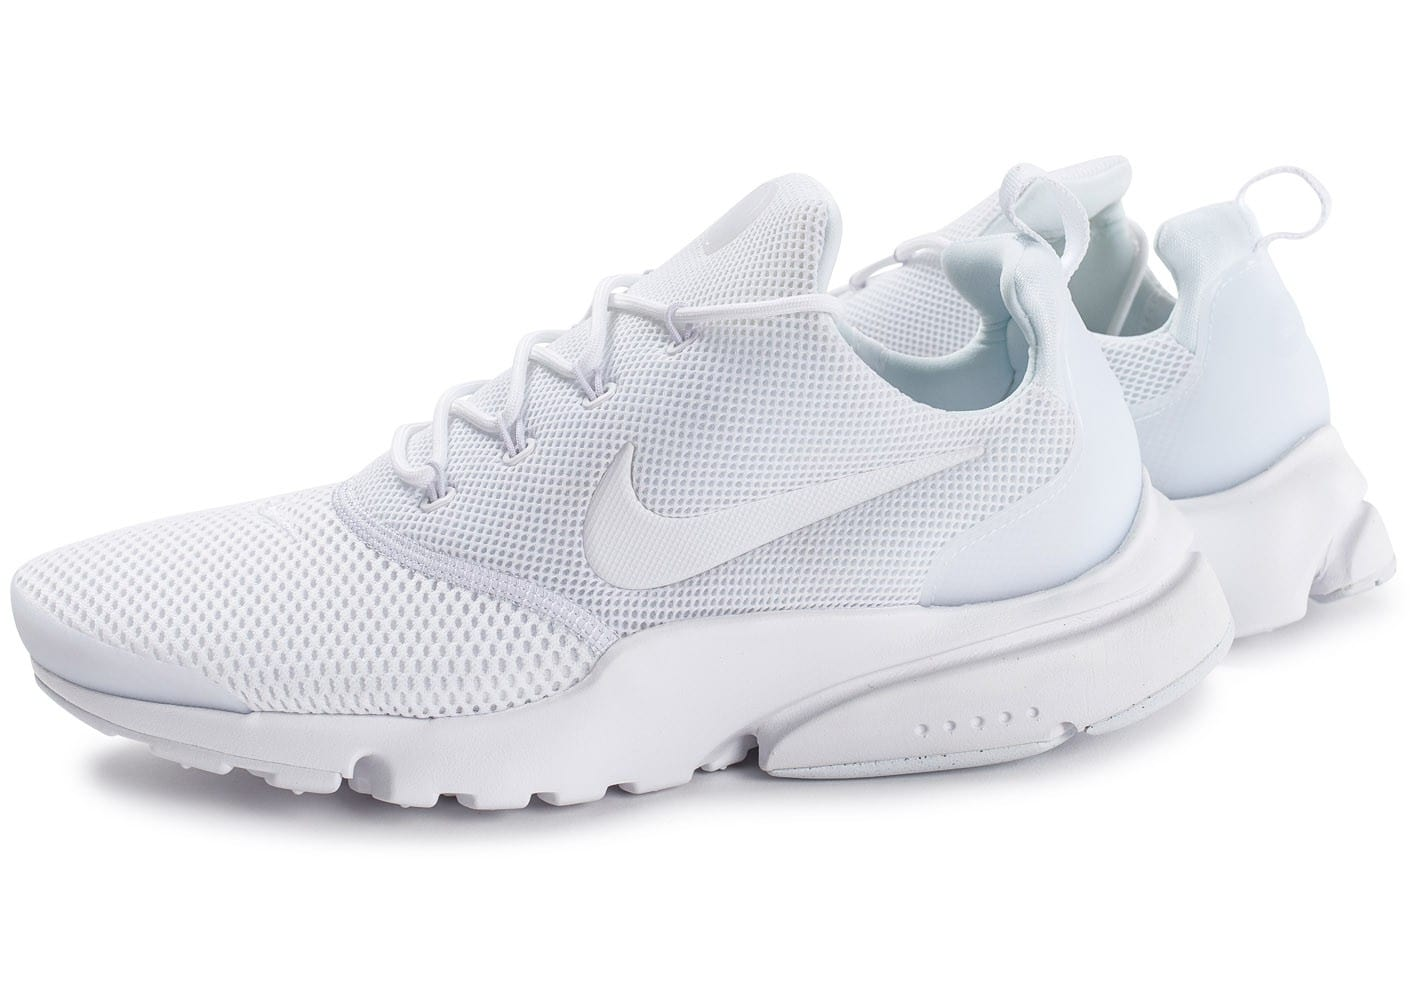 nike presto fly triple blanc chaussures homme chausport. Black Bedroom Furniture Sets. Home Design Ideas